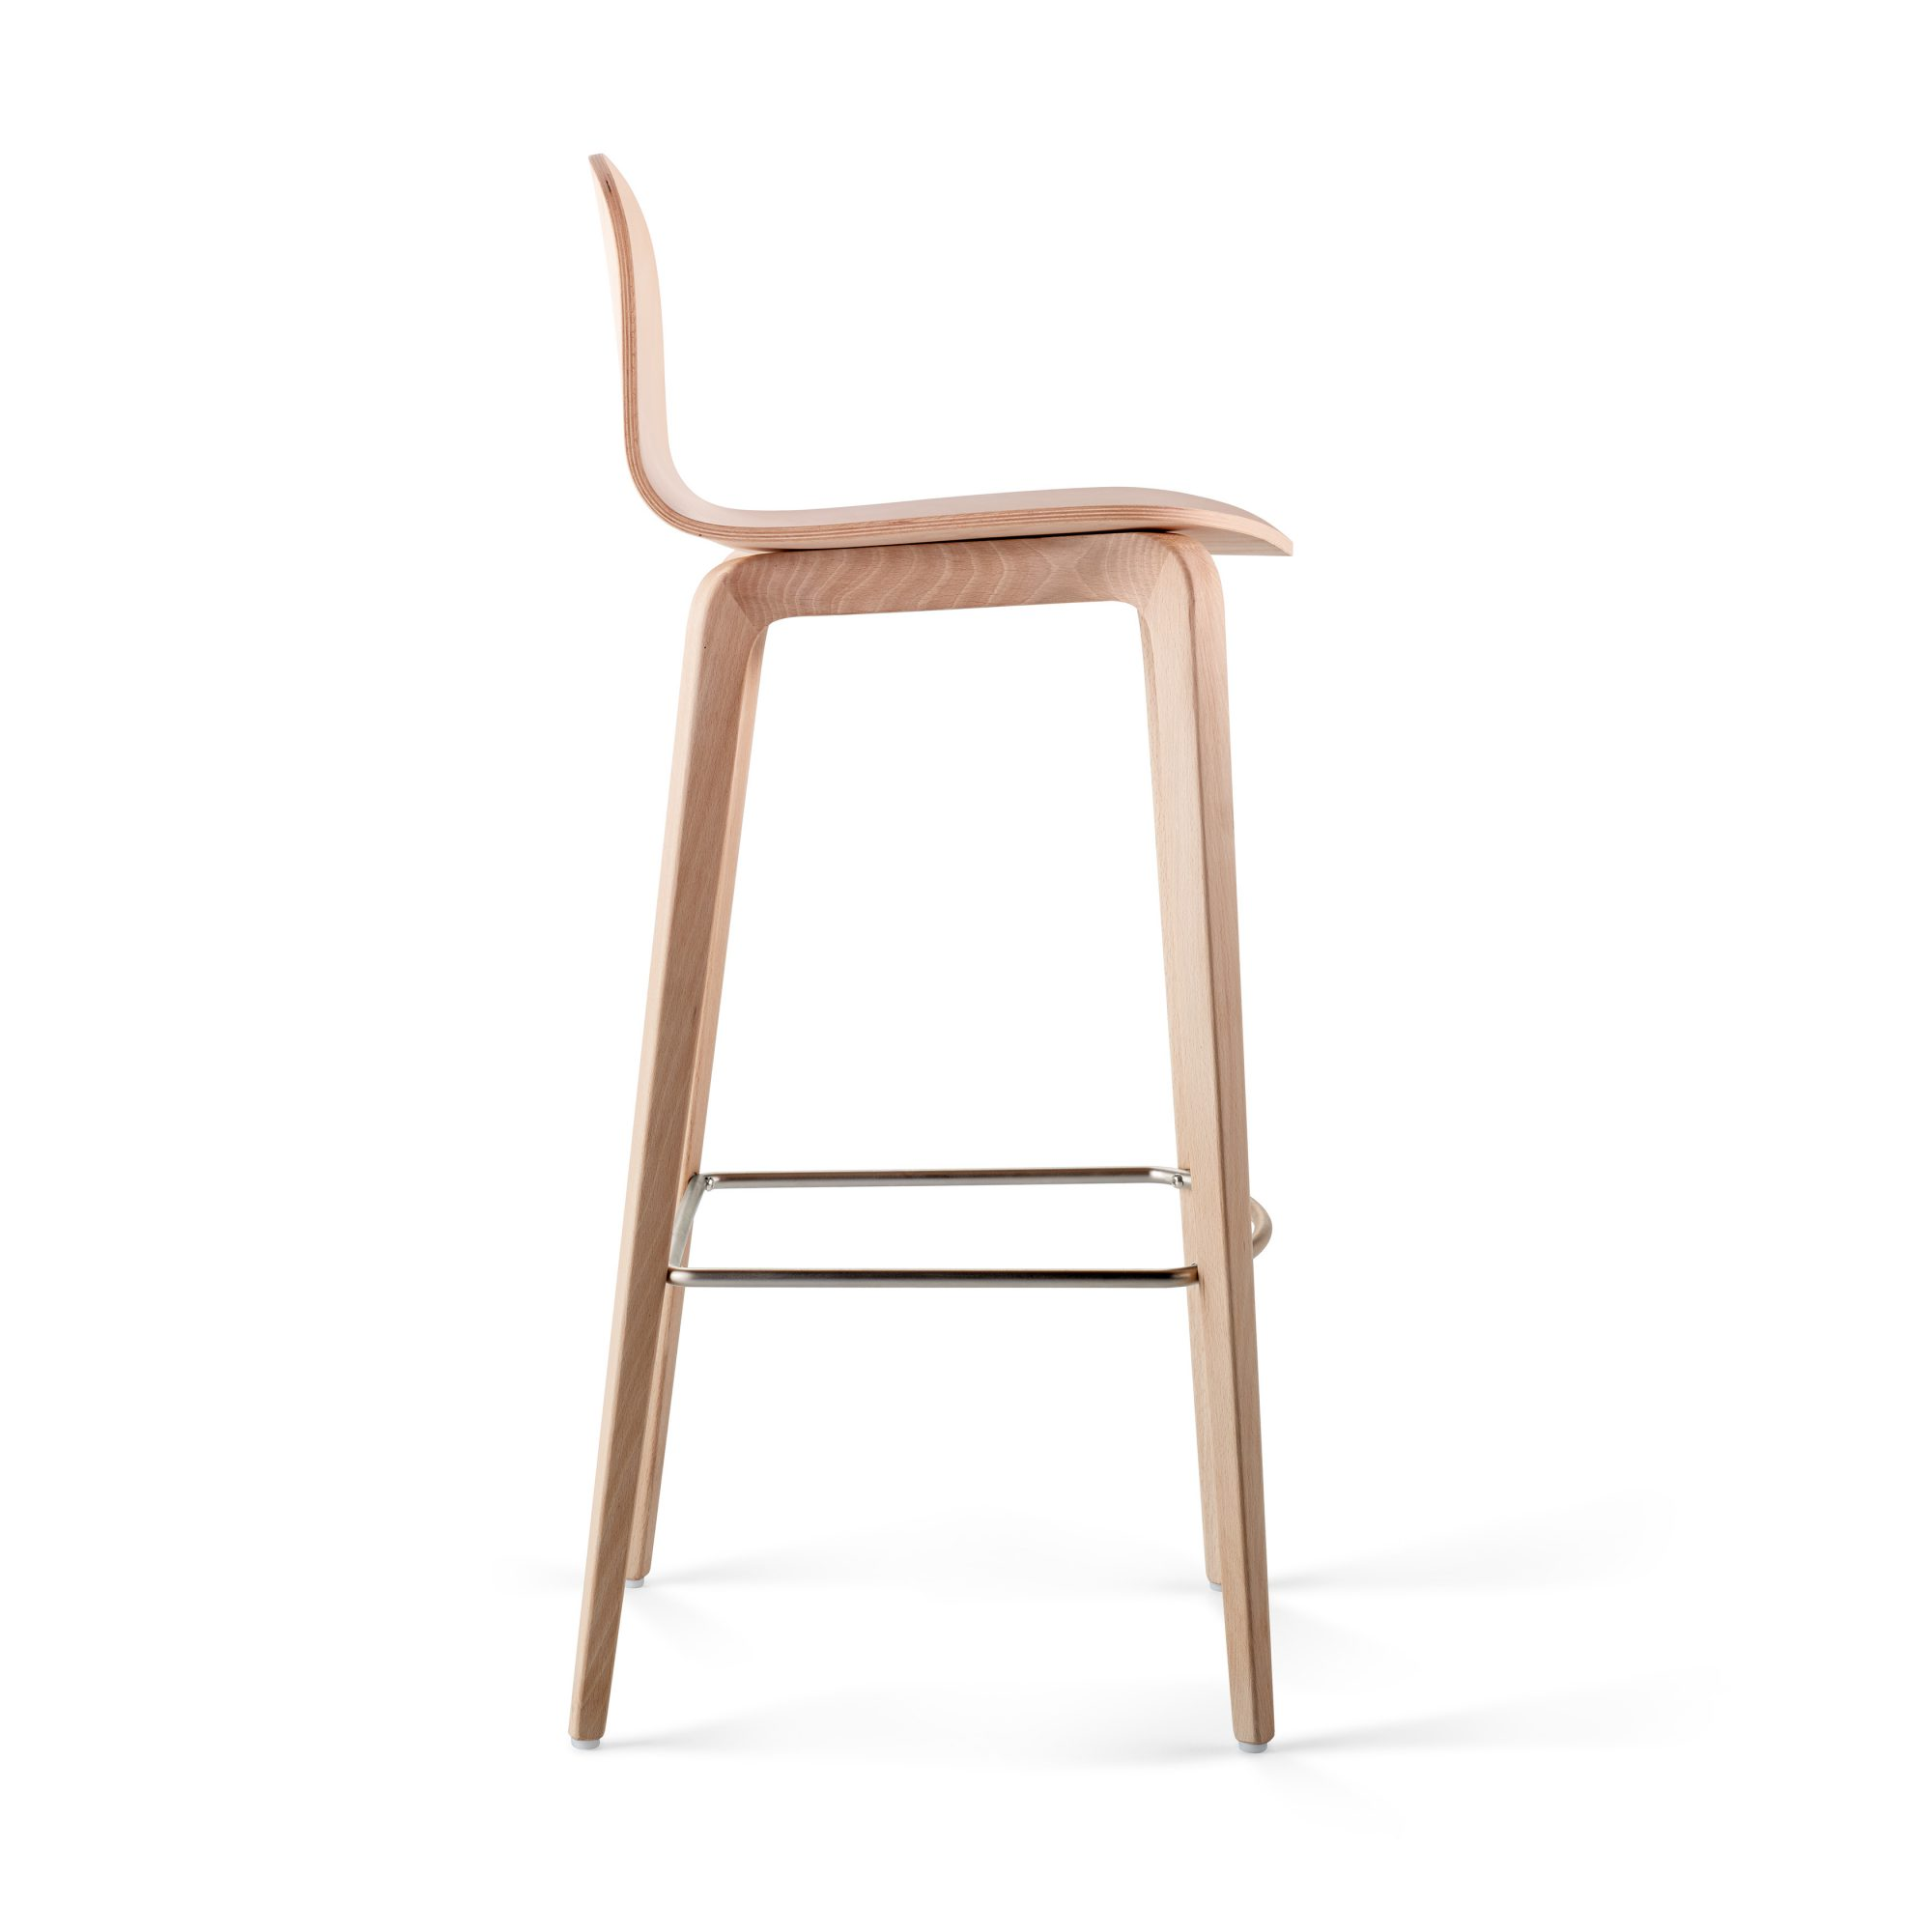 stools wooden stoolsbar cowhide legs barstools plus fabric seating seat bar and tall awesome back extra height chair dining counter high with stool ladder amp